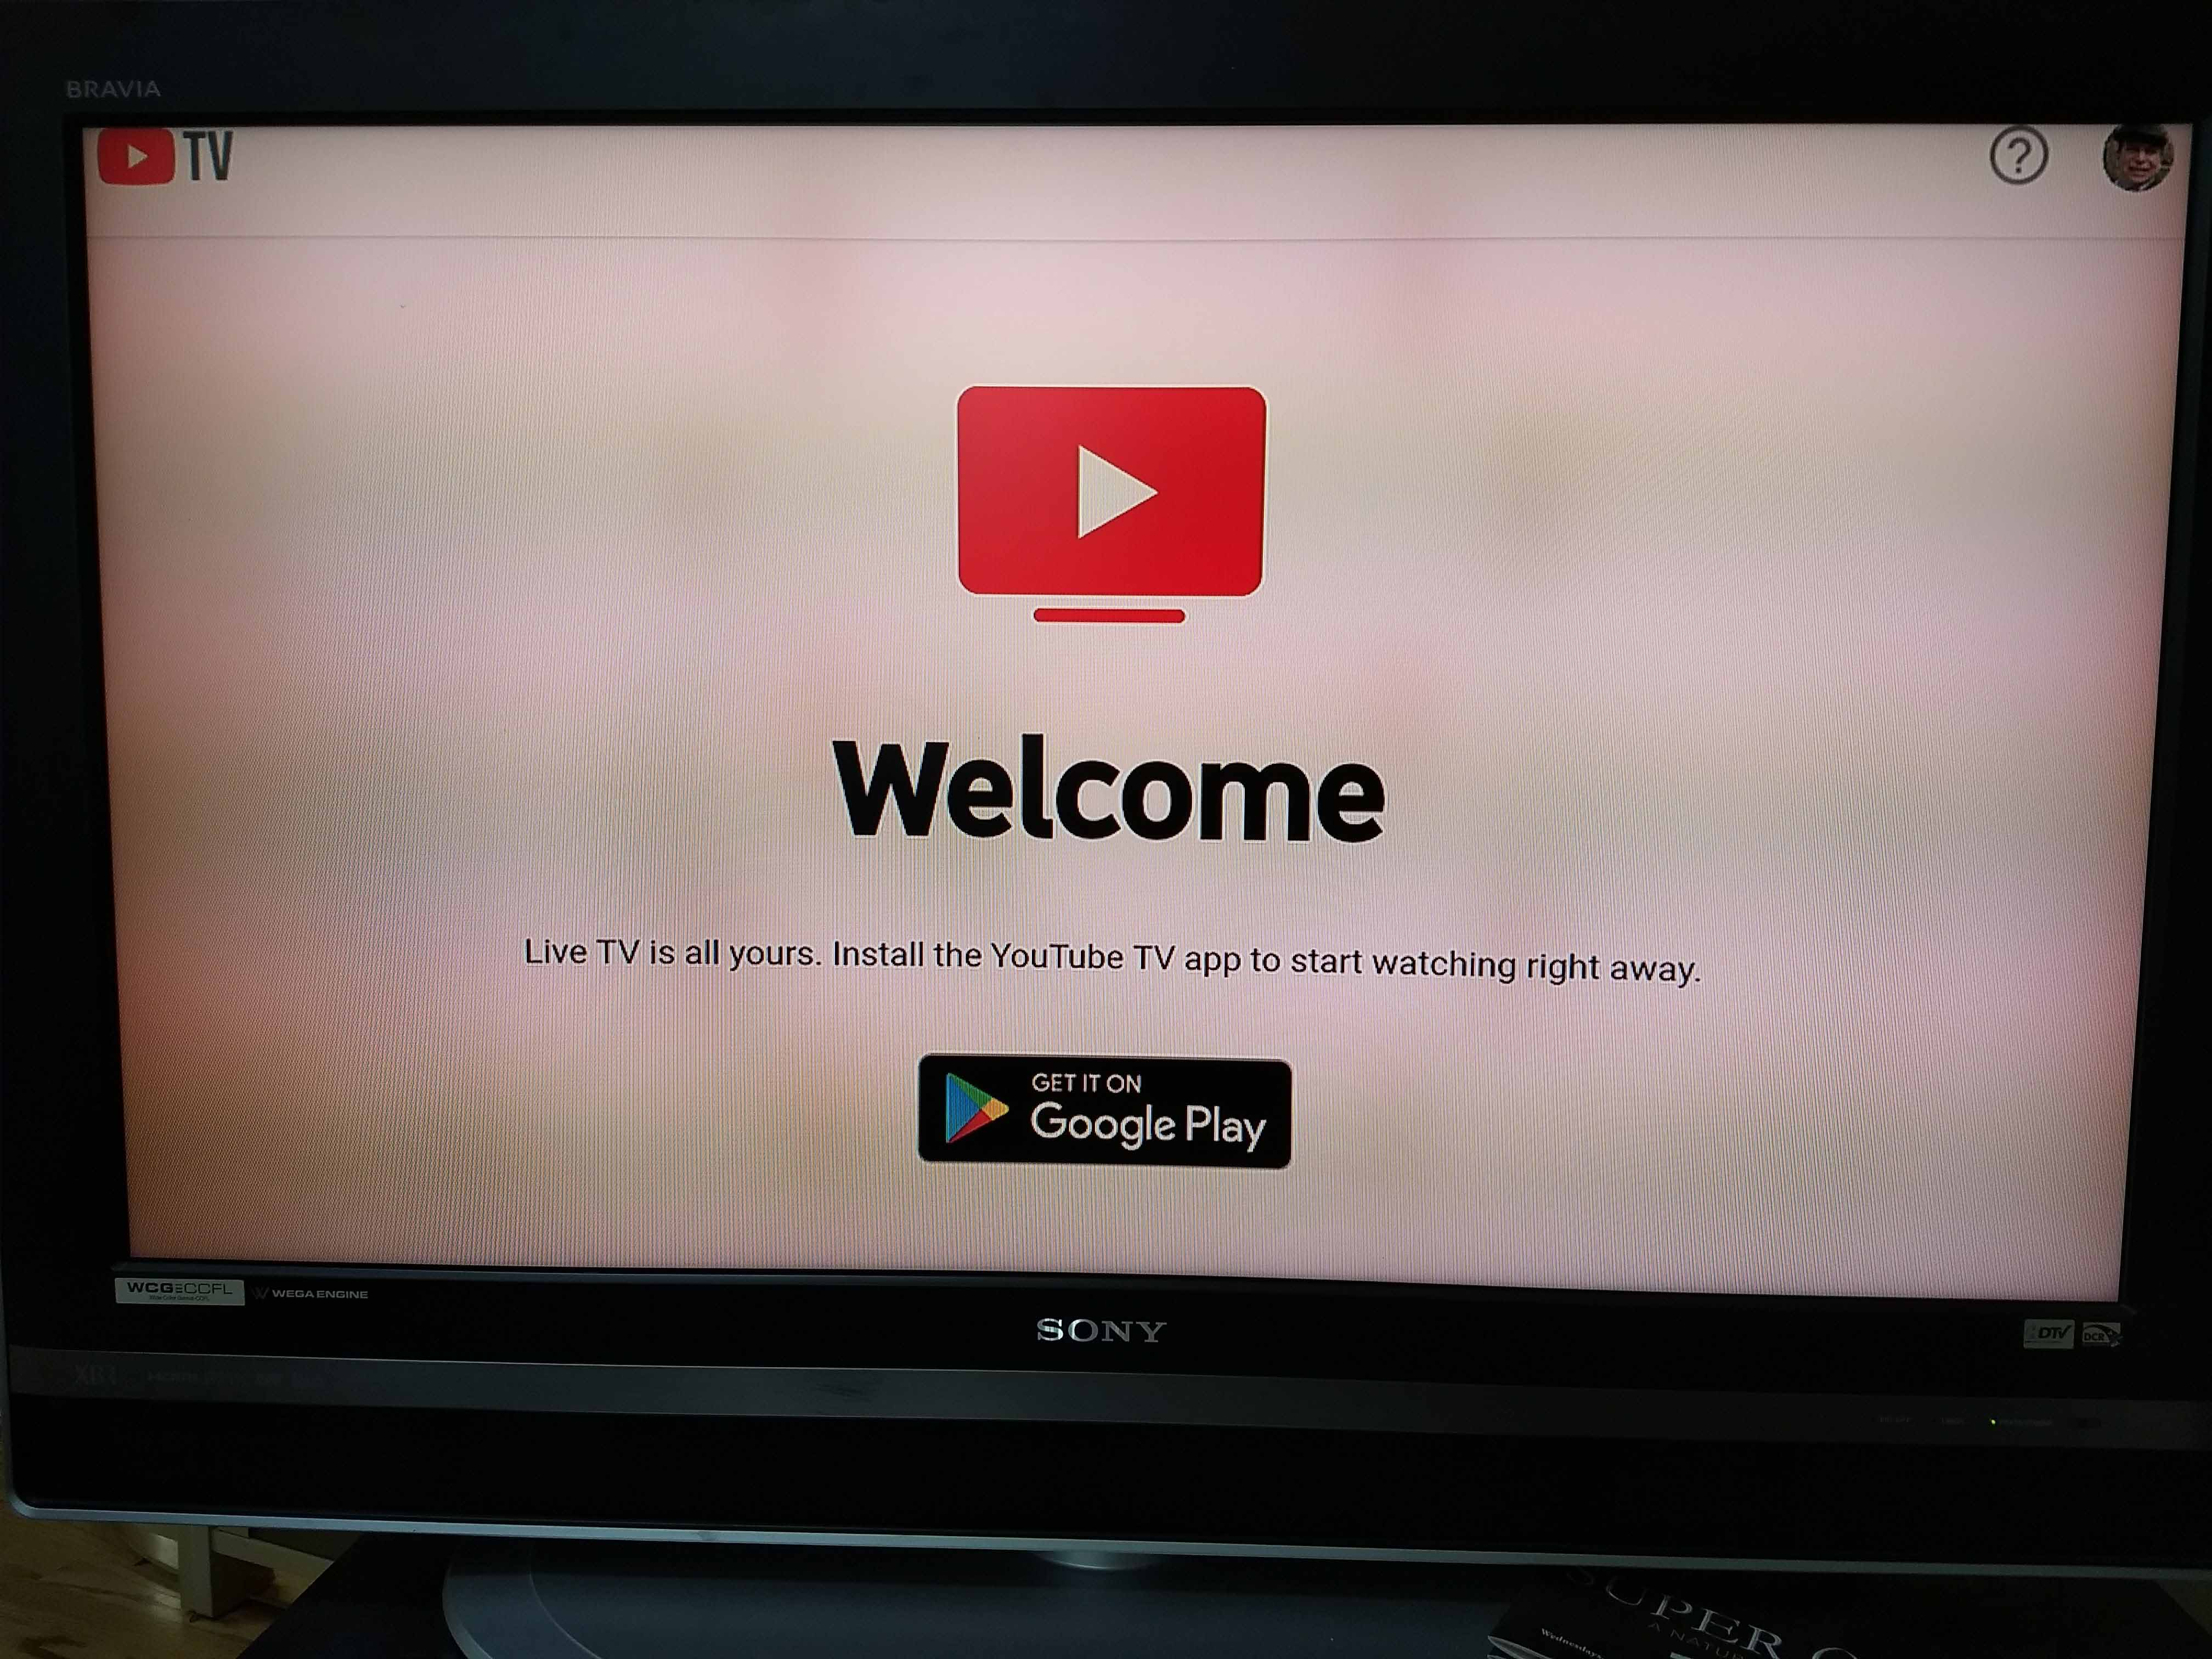 FireFox For Fire TV 2 1 2 does not support YouTube TV paid